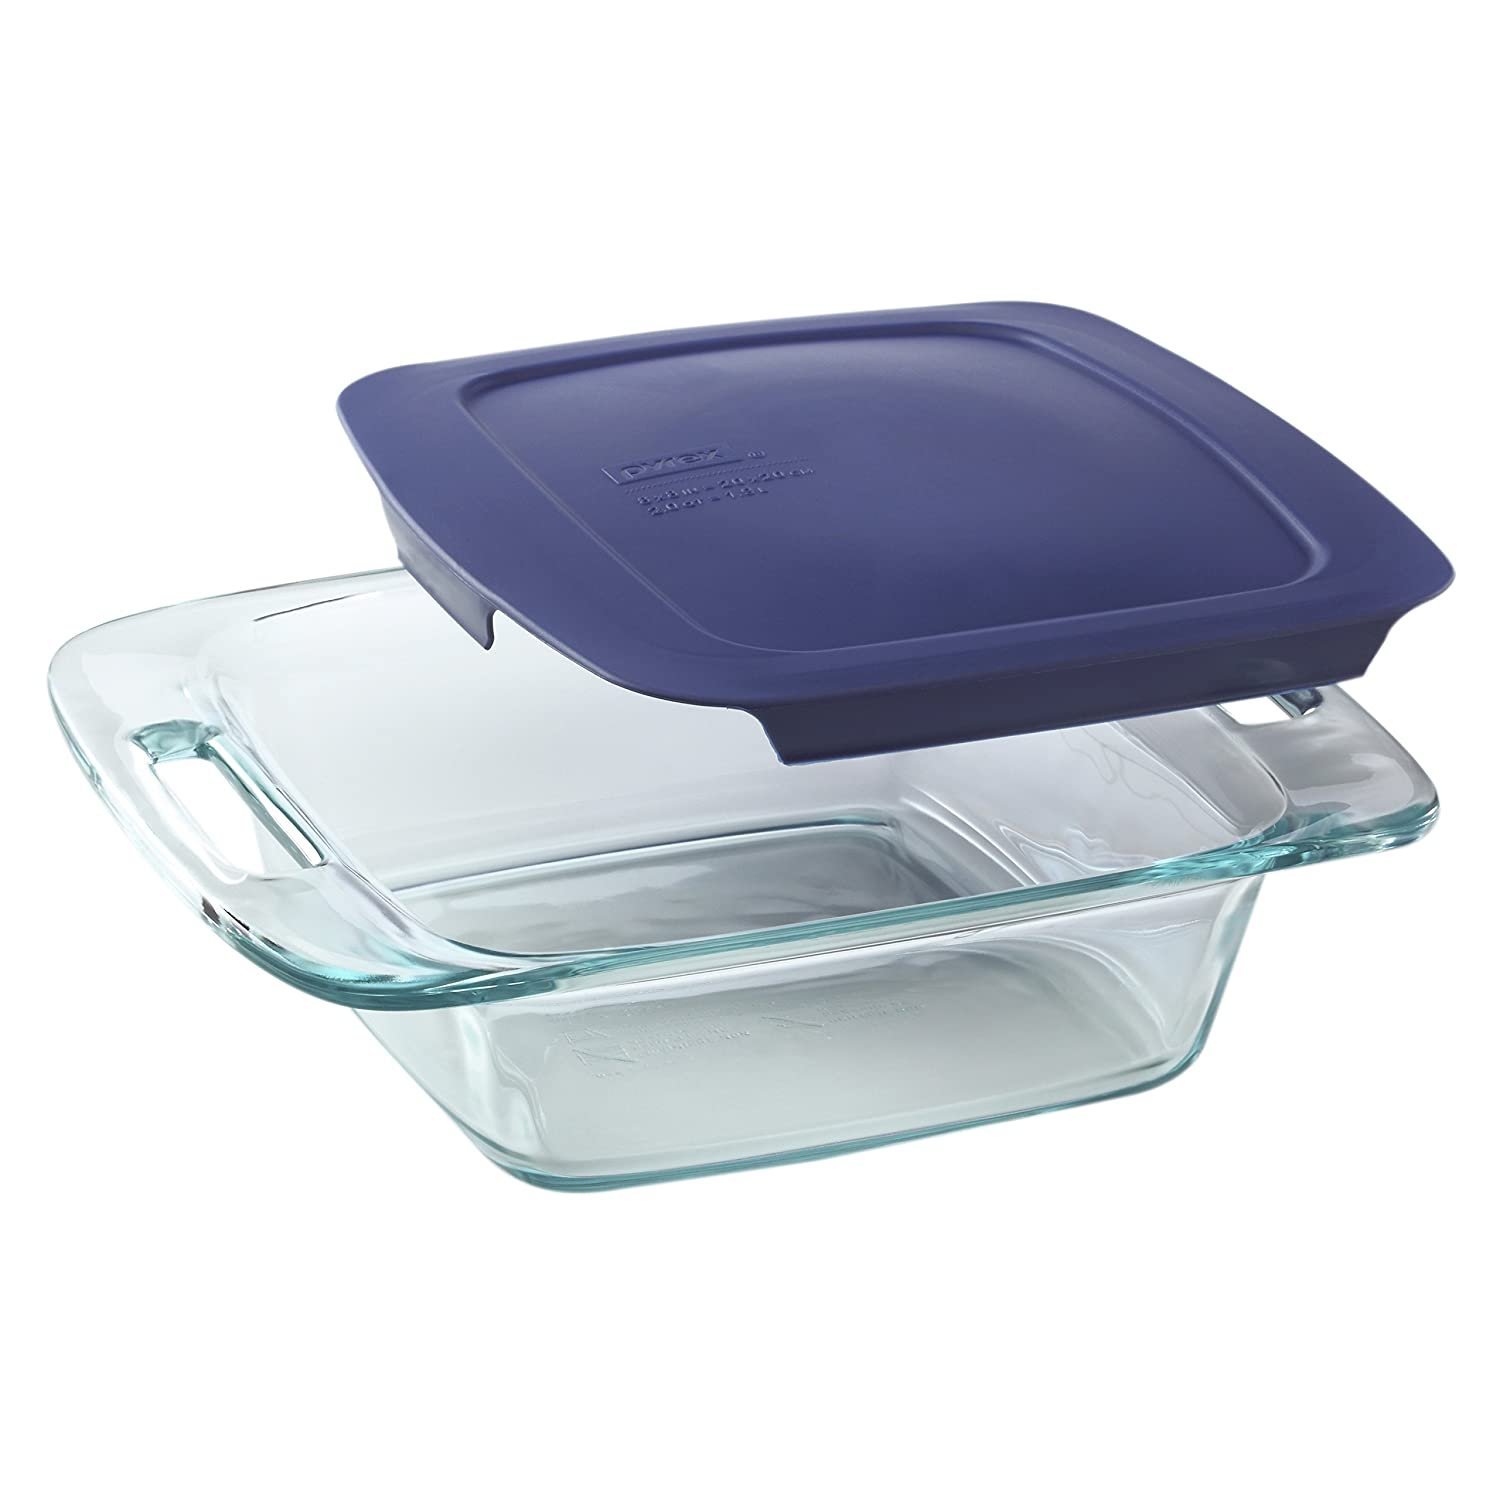 Amazon.com: Pyrex Easy Grab 8 Piece Glass Bakeware And Food Storage Set:  Bake And Serve Sets: Kitchen U0026 Dining